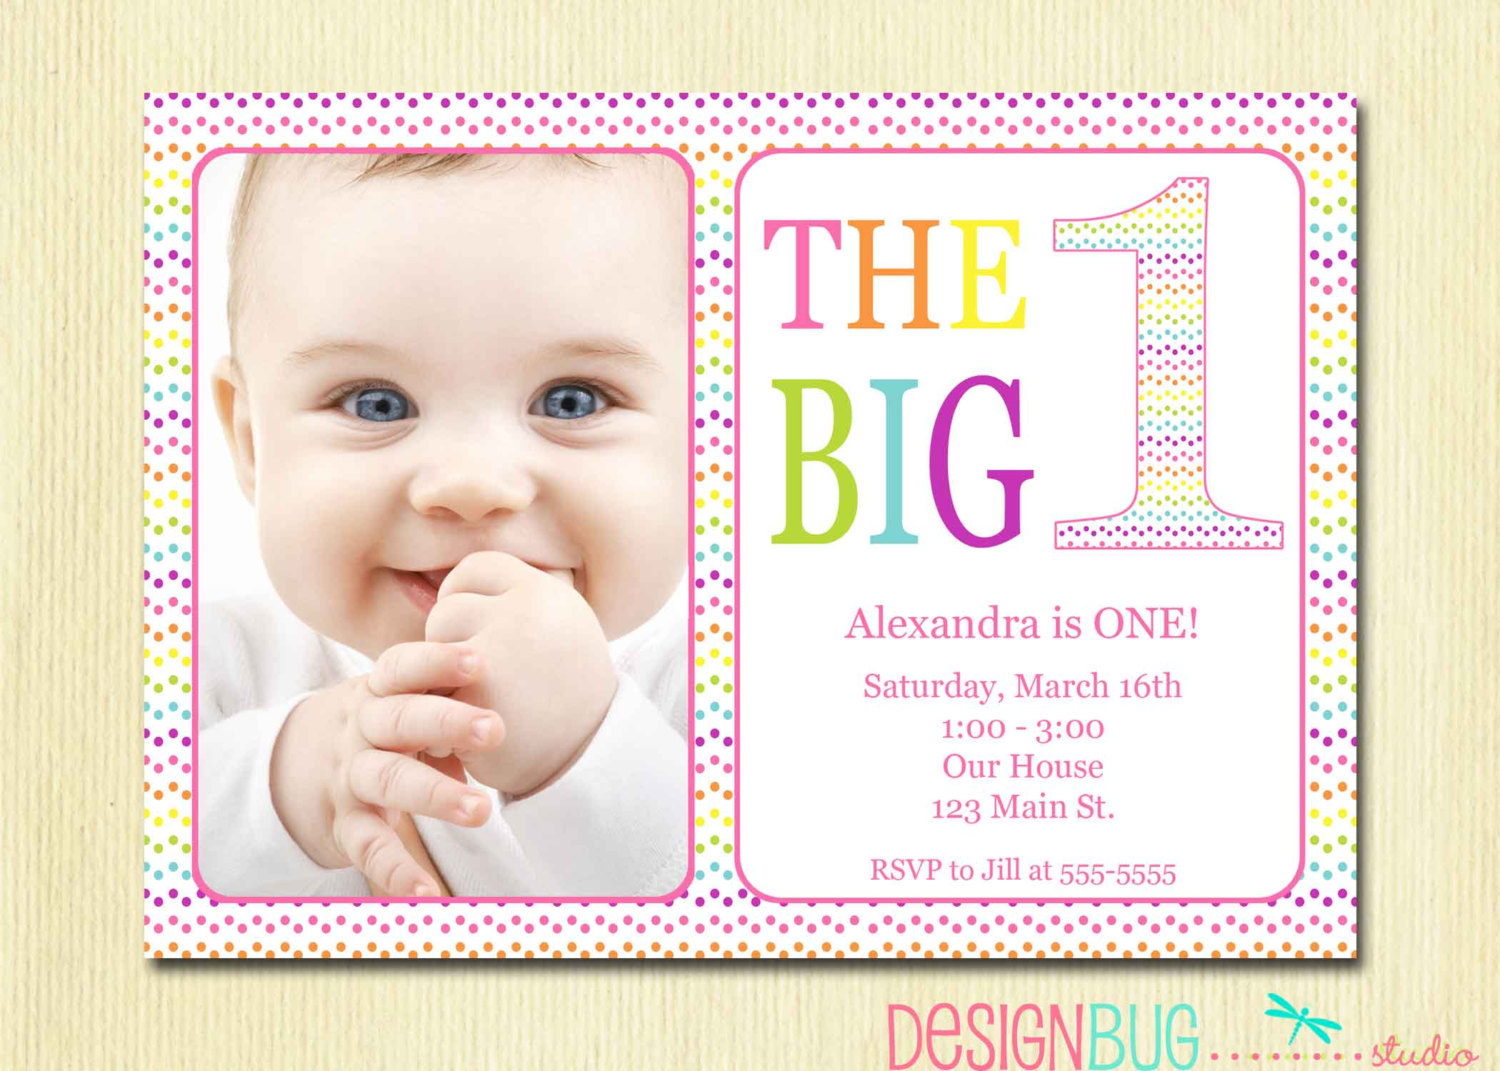 one year old birthday invitation templates ; Chic-Baby-Girl-First-Birthday-Invitations-As-Birthday-Invitations